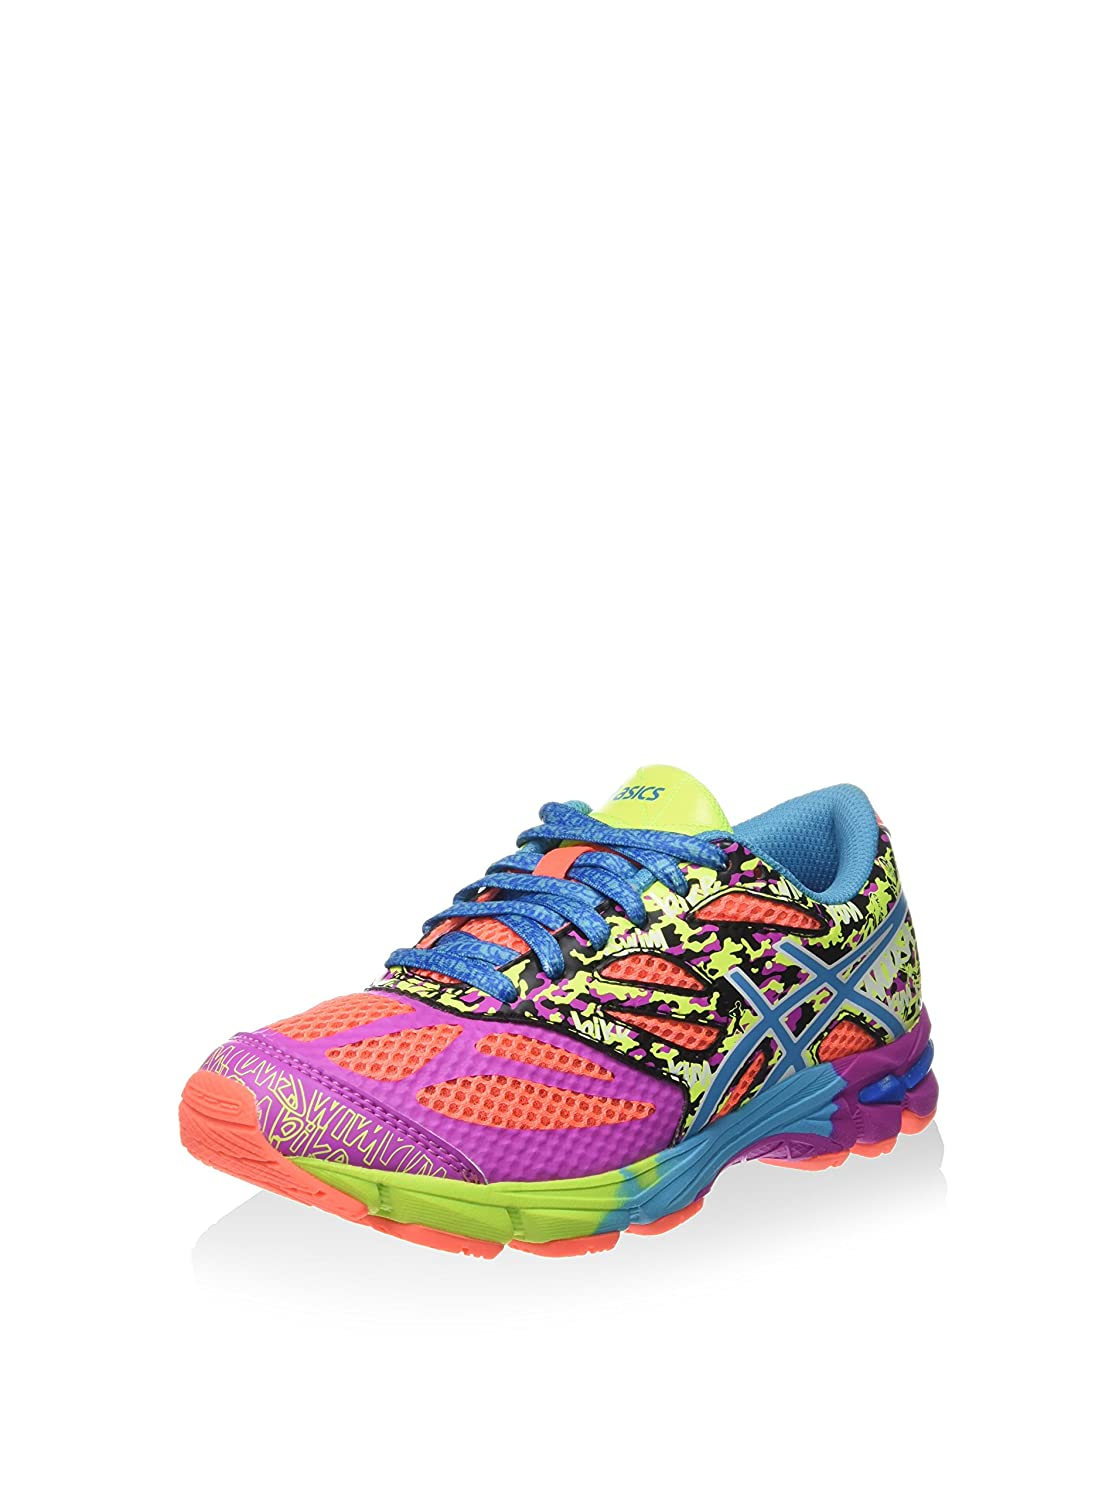 3df1095eaeab ASICS Unisex Children Gel-Noosa Tri 10 Gs Running Shoes Red Size  6   Amazon.co.uk  Shoes   Bags